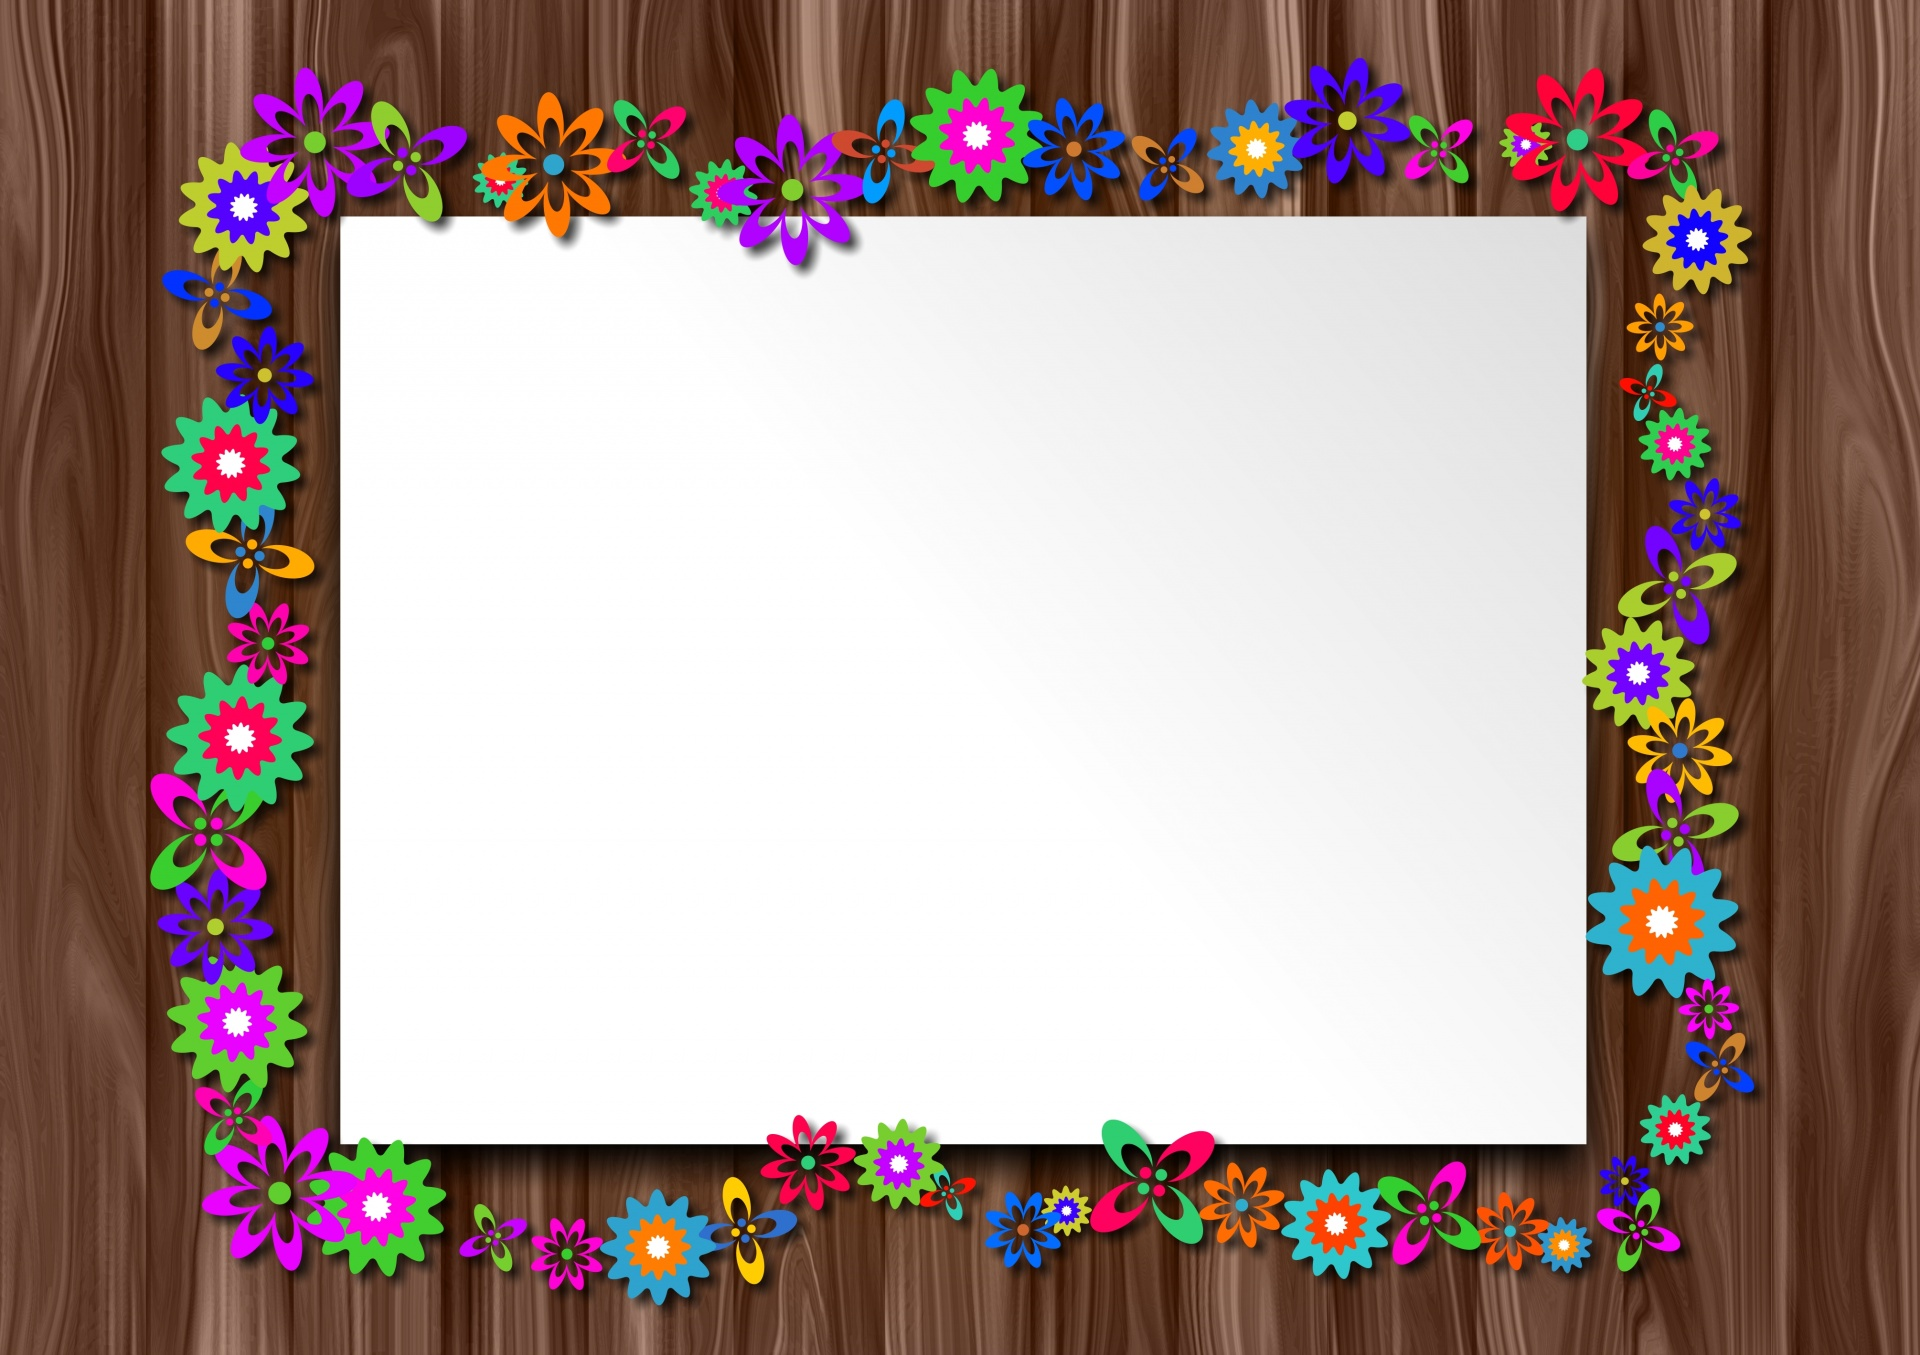 Page Border Free Stock Photo Public Domain Pictures